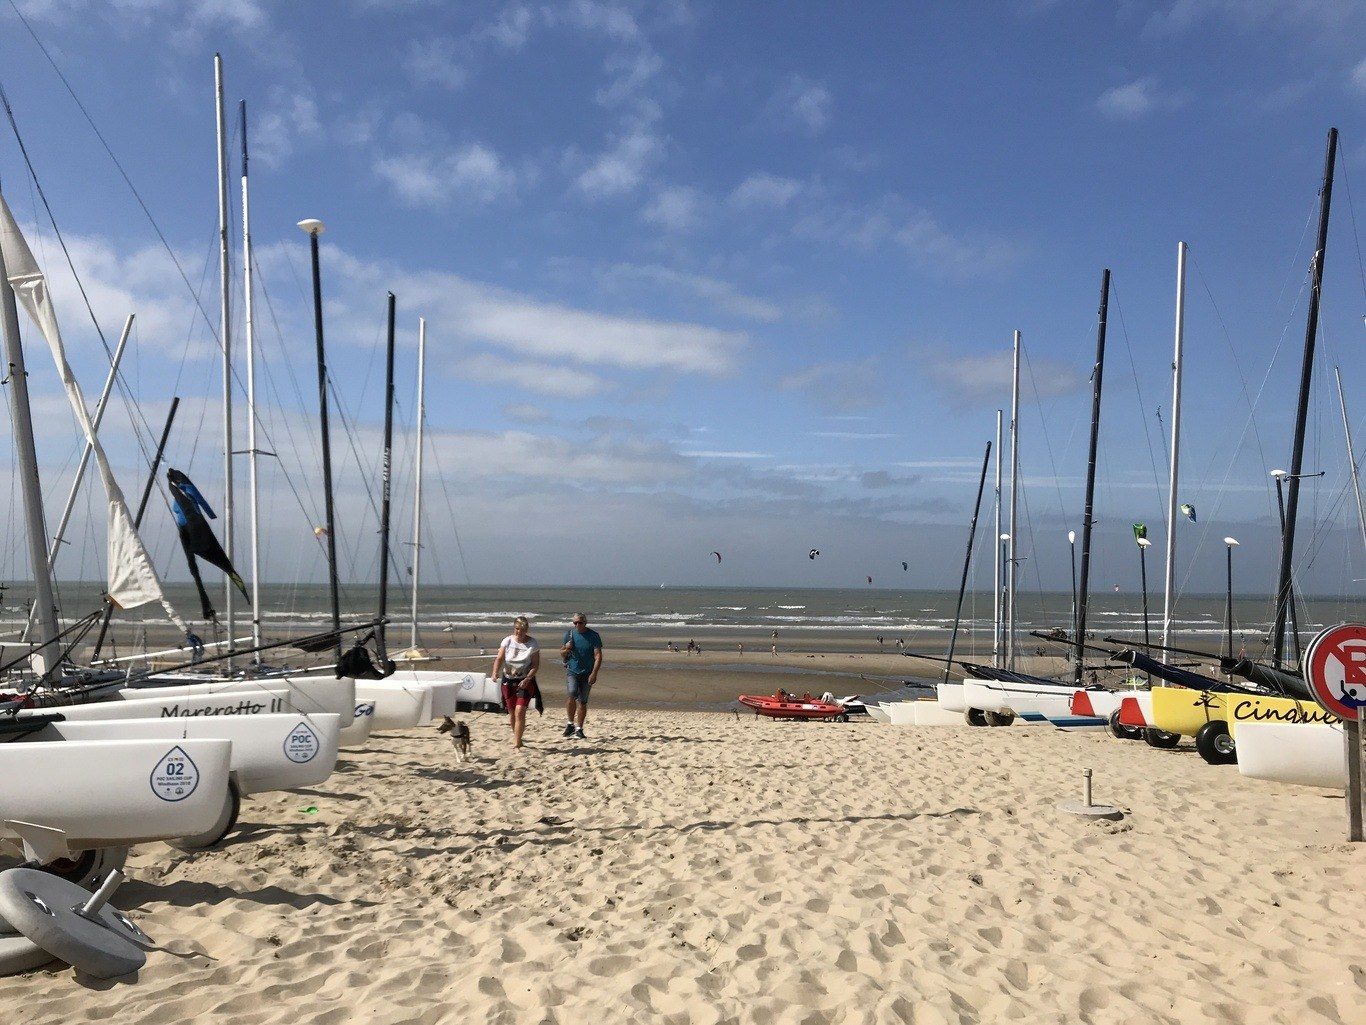 Boats line a sandy shore at the beach club in De Haan